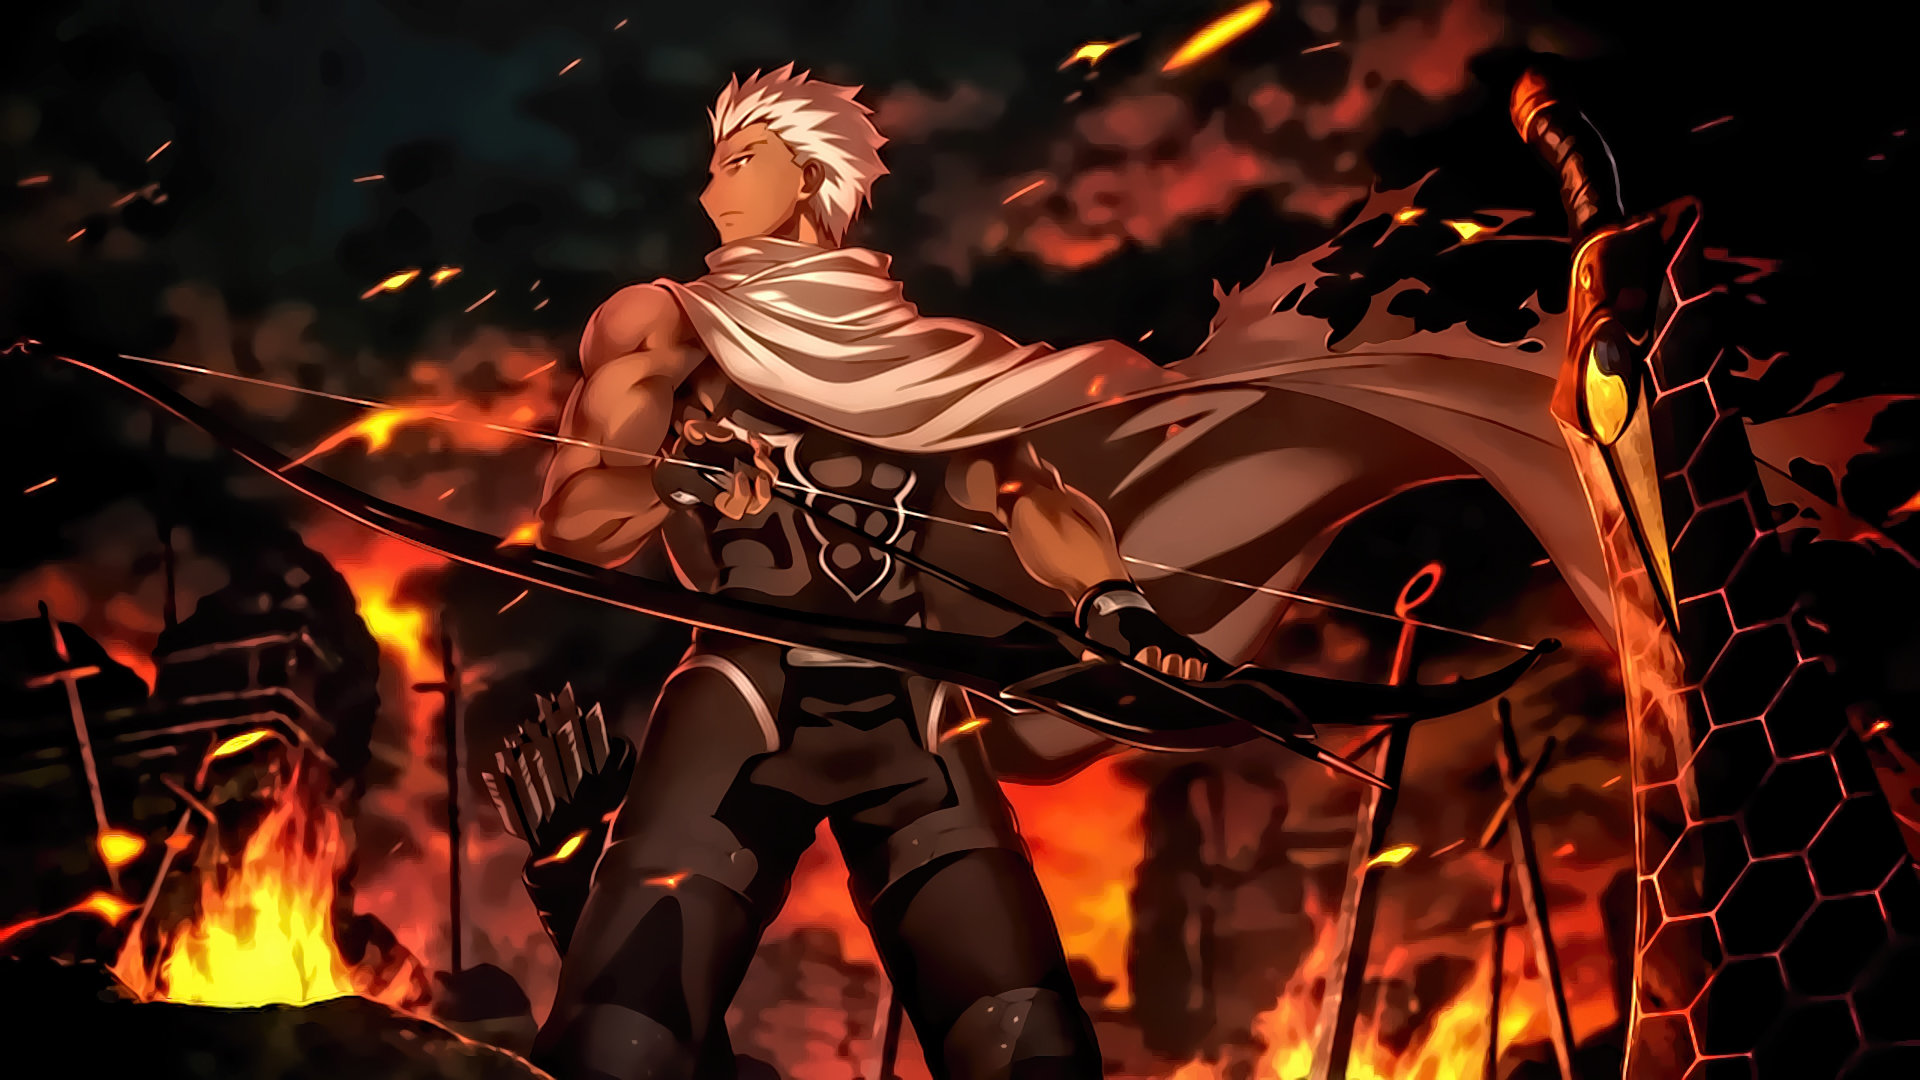 Awesome Fate/Stay Night: Unlimited Blade Works free background ID:291044 for hd 1080p computer